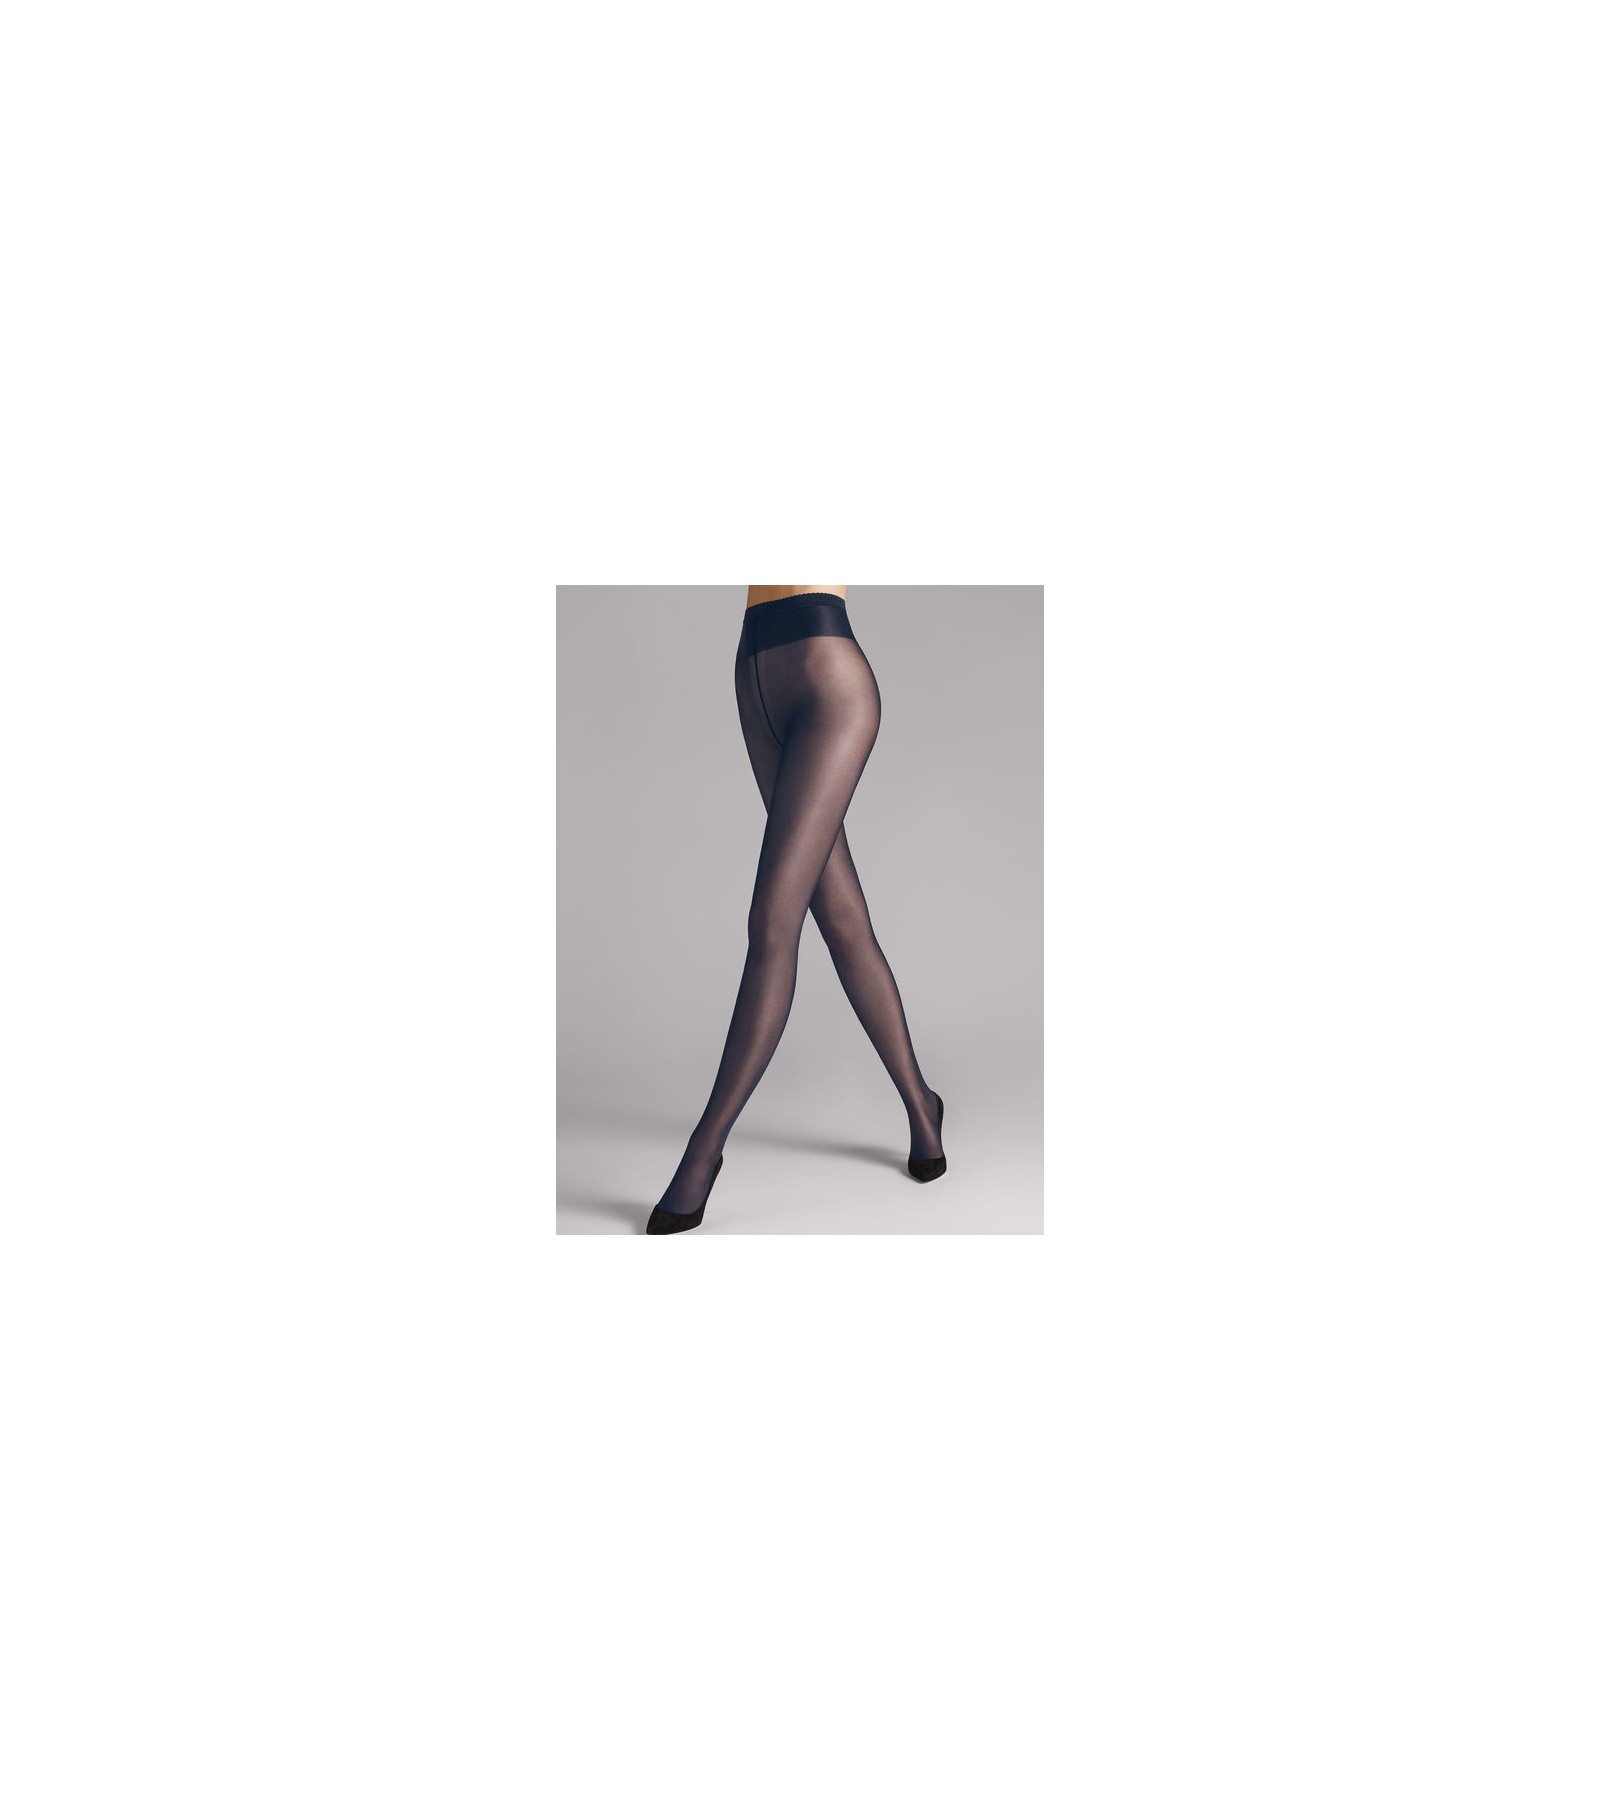 2d8c86bb60a Panty Semi-Opaque Very Brilliant - 40 Deniers - Wolford Neon 40 Tights 183  91